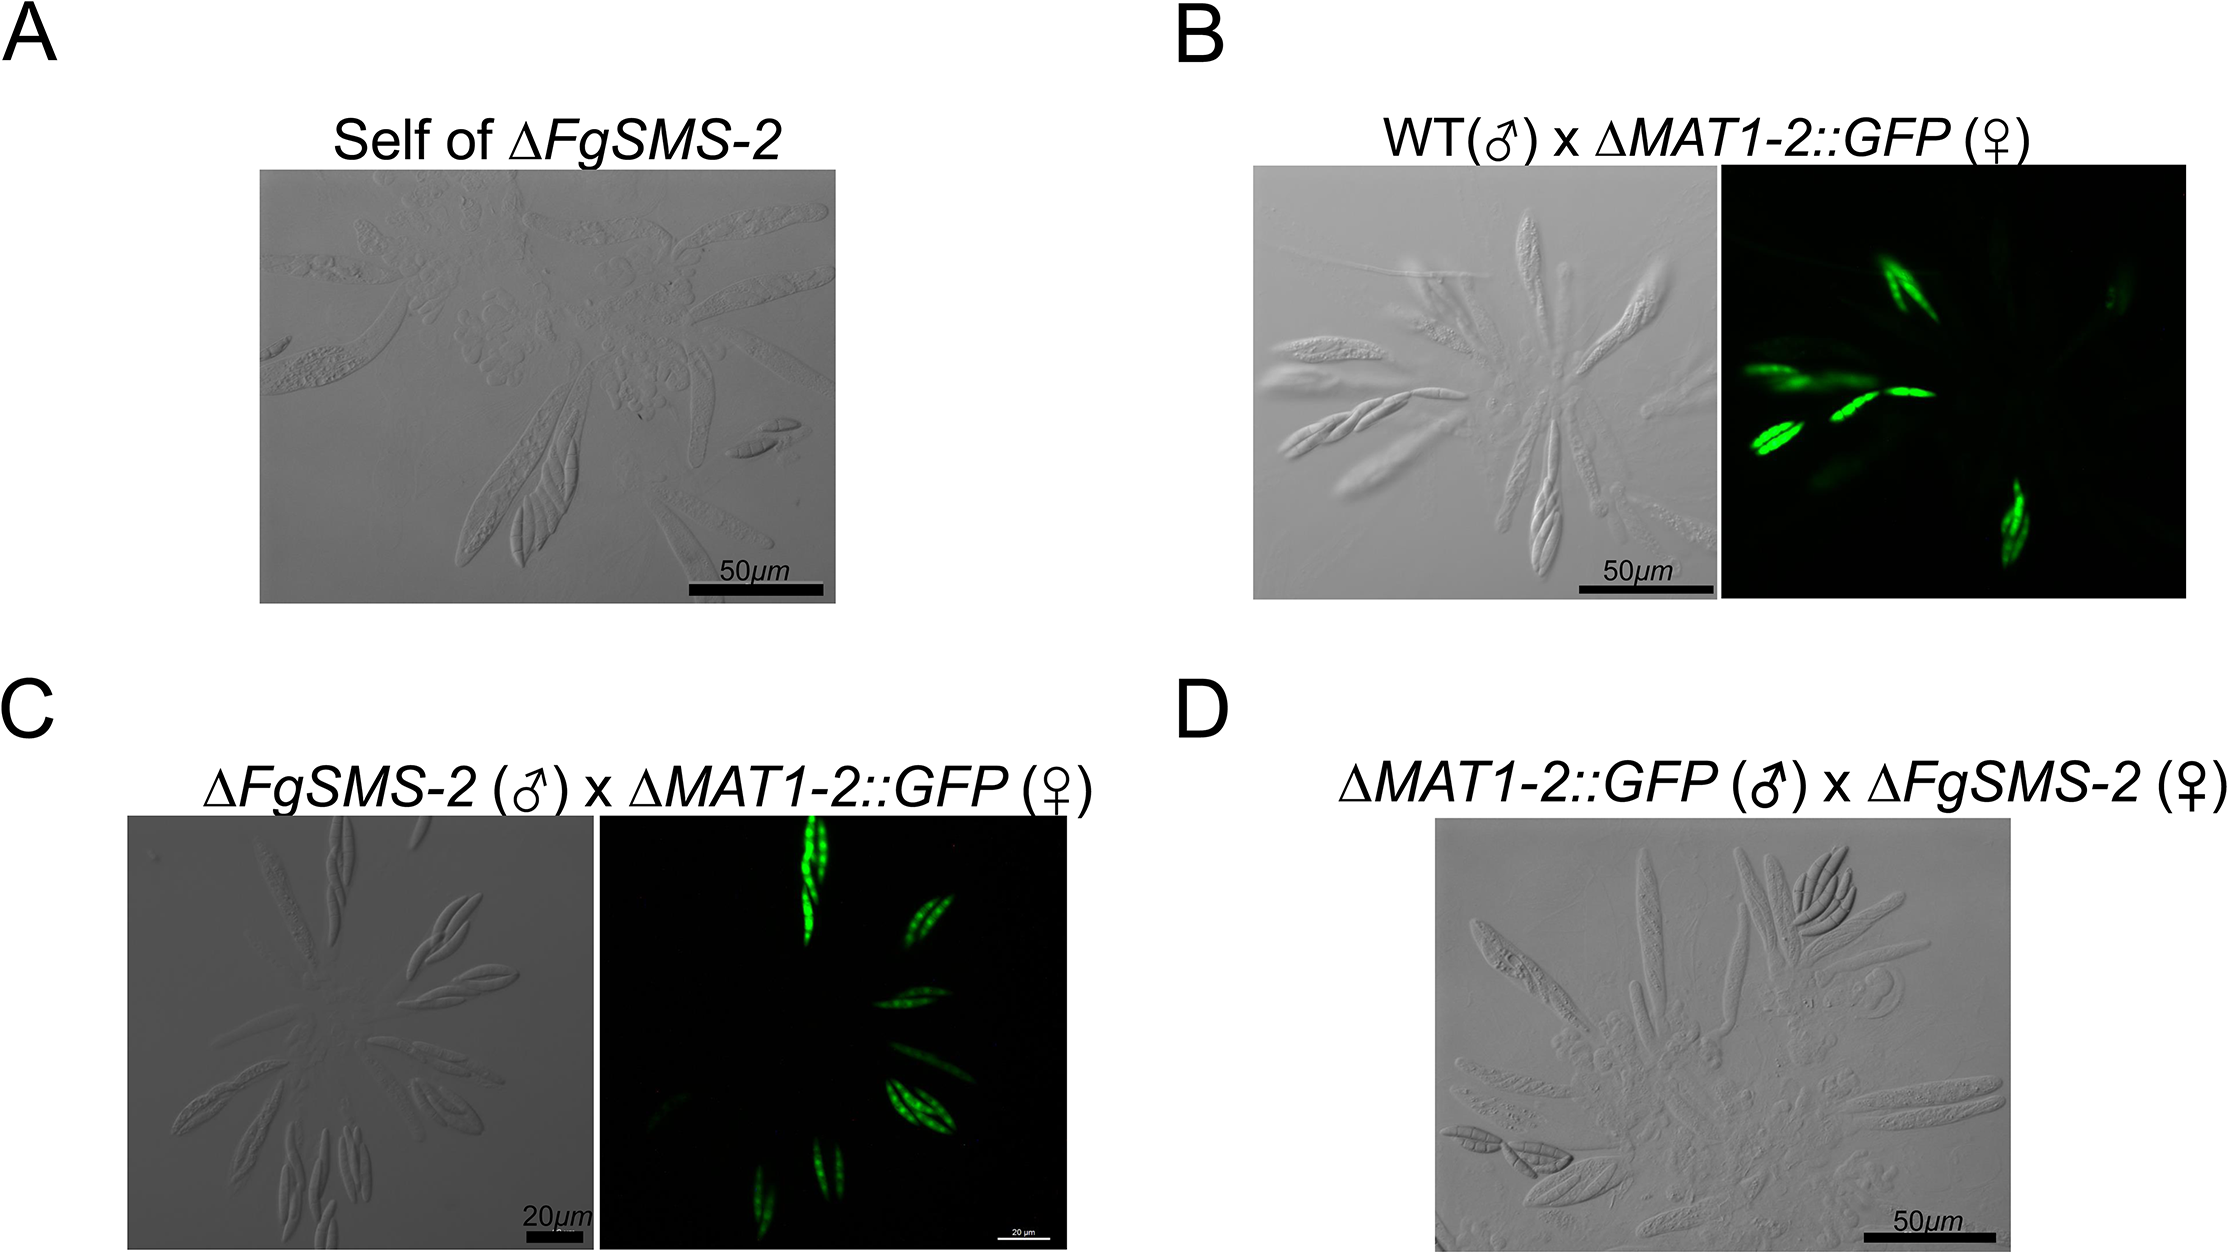 Morphology of asci and ascospores produced in the self-cross of Δ<i>FgSMS-2</i> (A) and outcrosses between WT(♂) and Δ<i>MAT1-2</i>::<i>GFP</i>(♀) (B), between Δ<i>FgSMS-2</i>(♂) and Δ<i>MAT1-2</i>::<i>GFP</i>(♀) (C), and between Δ<i>MAT1-2</i>::<i>GFP</i>(♂) and Δ<i>FgSMS-2</i>(♀) (D).